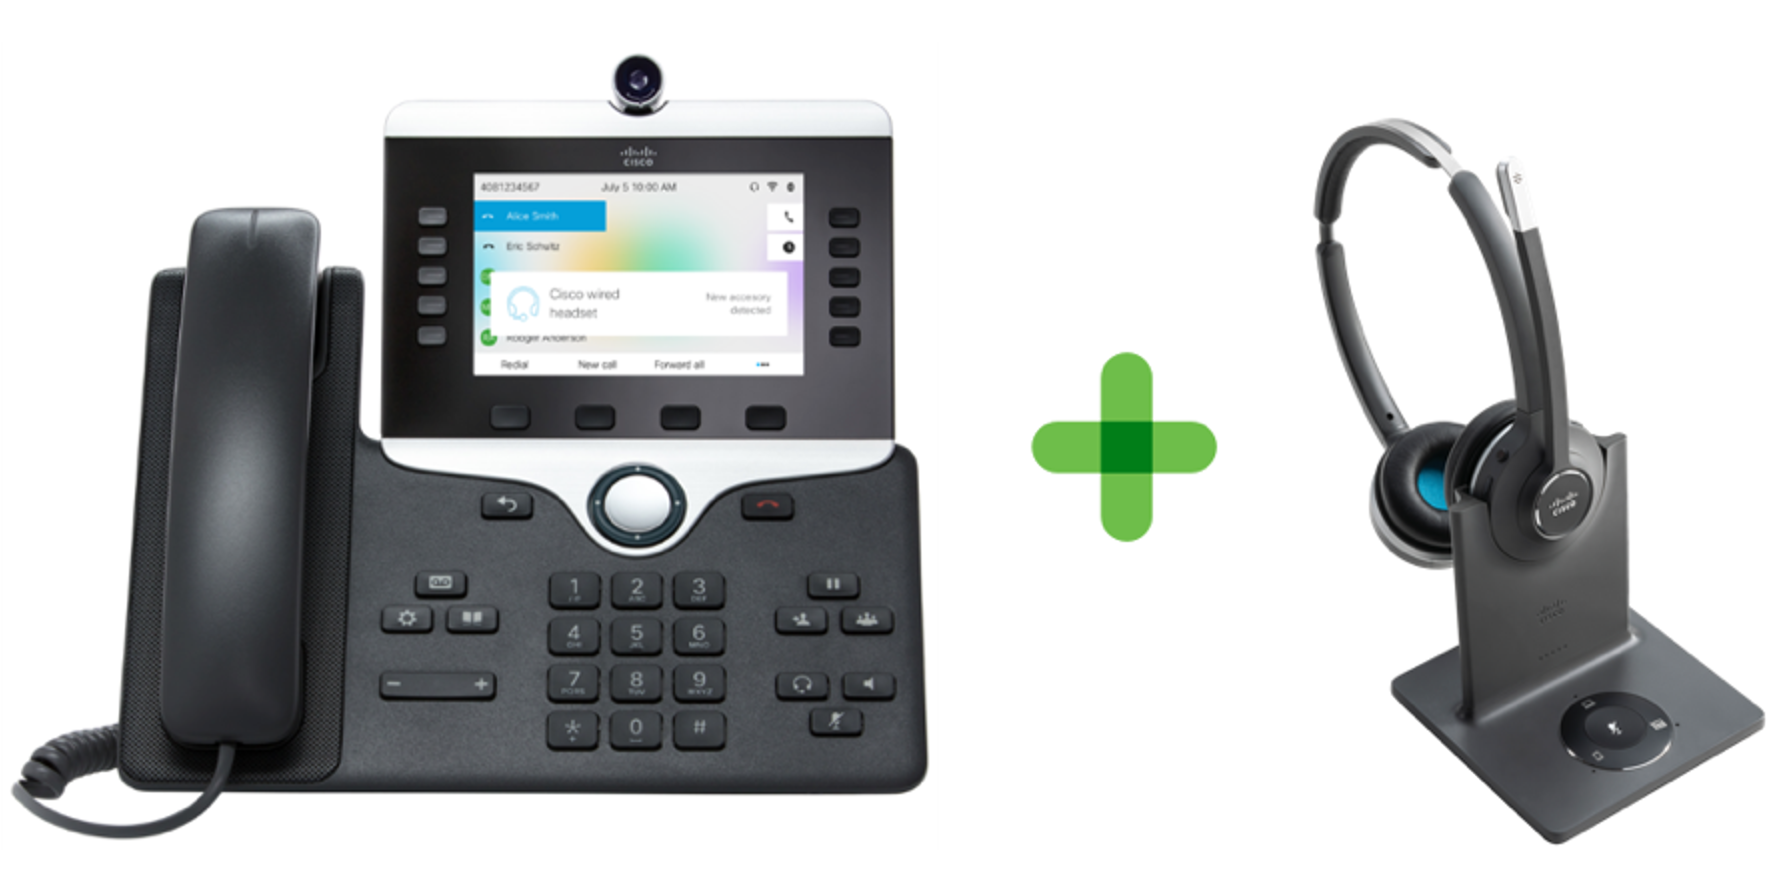 Cisco Headset and Extension Mobility showing seamless login and logout experience